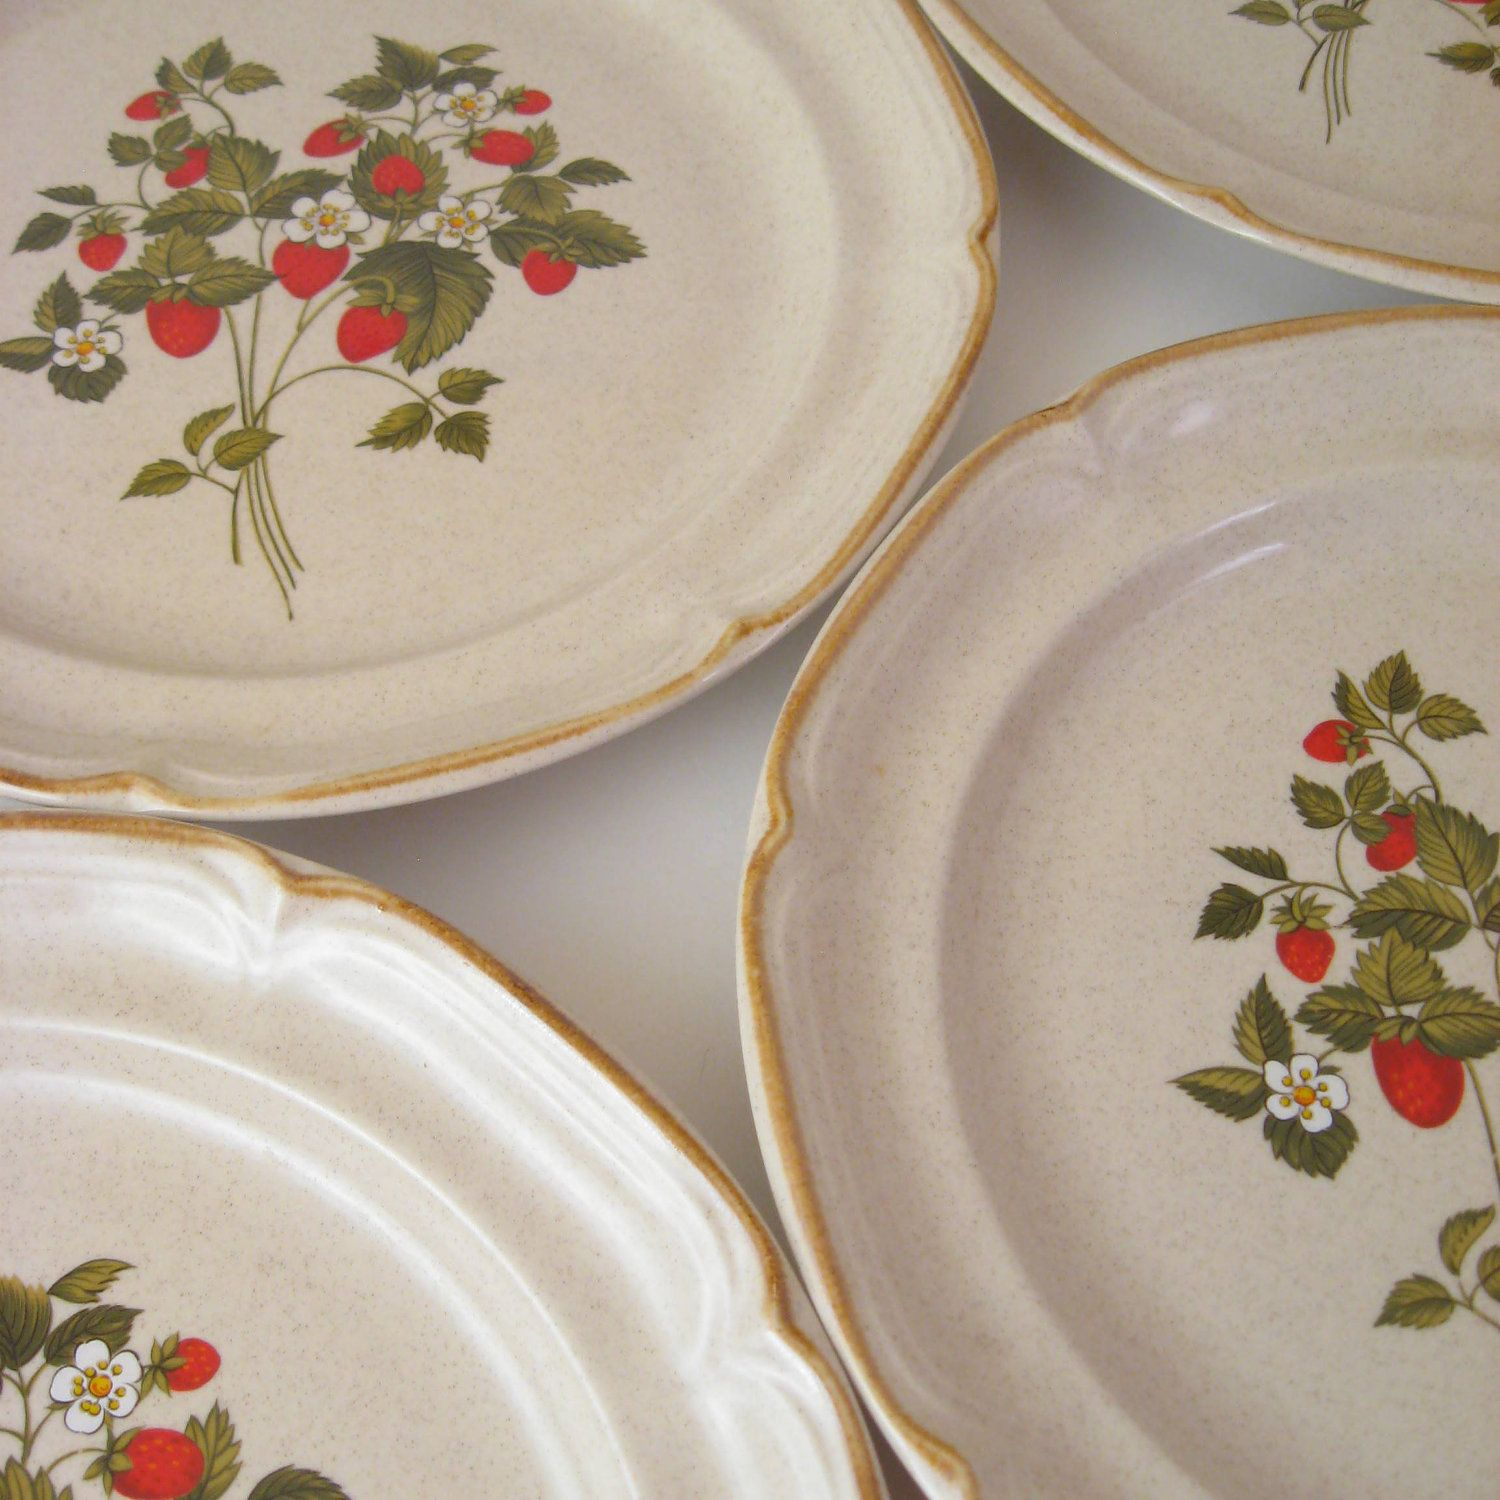 Vintage Dinner Plates, Set of 4, Inter